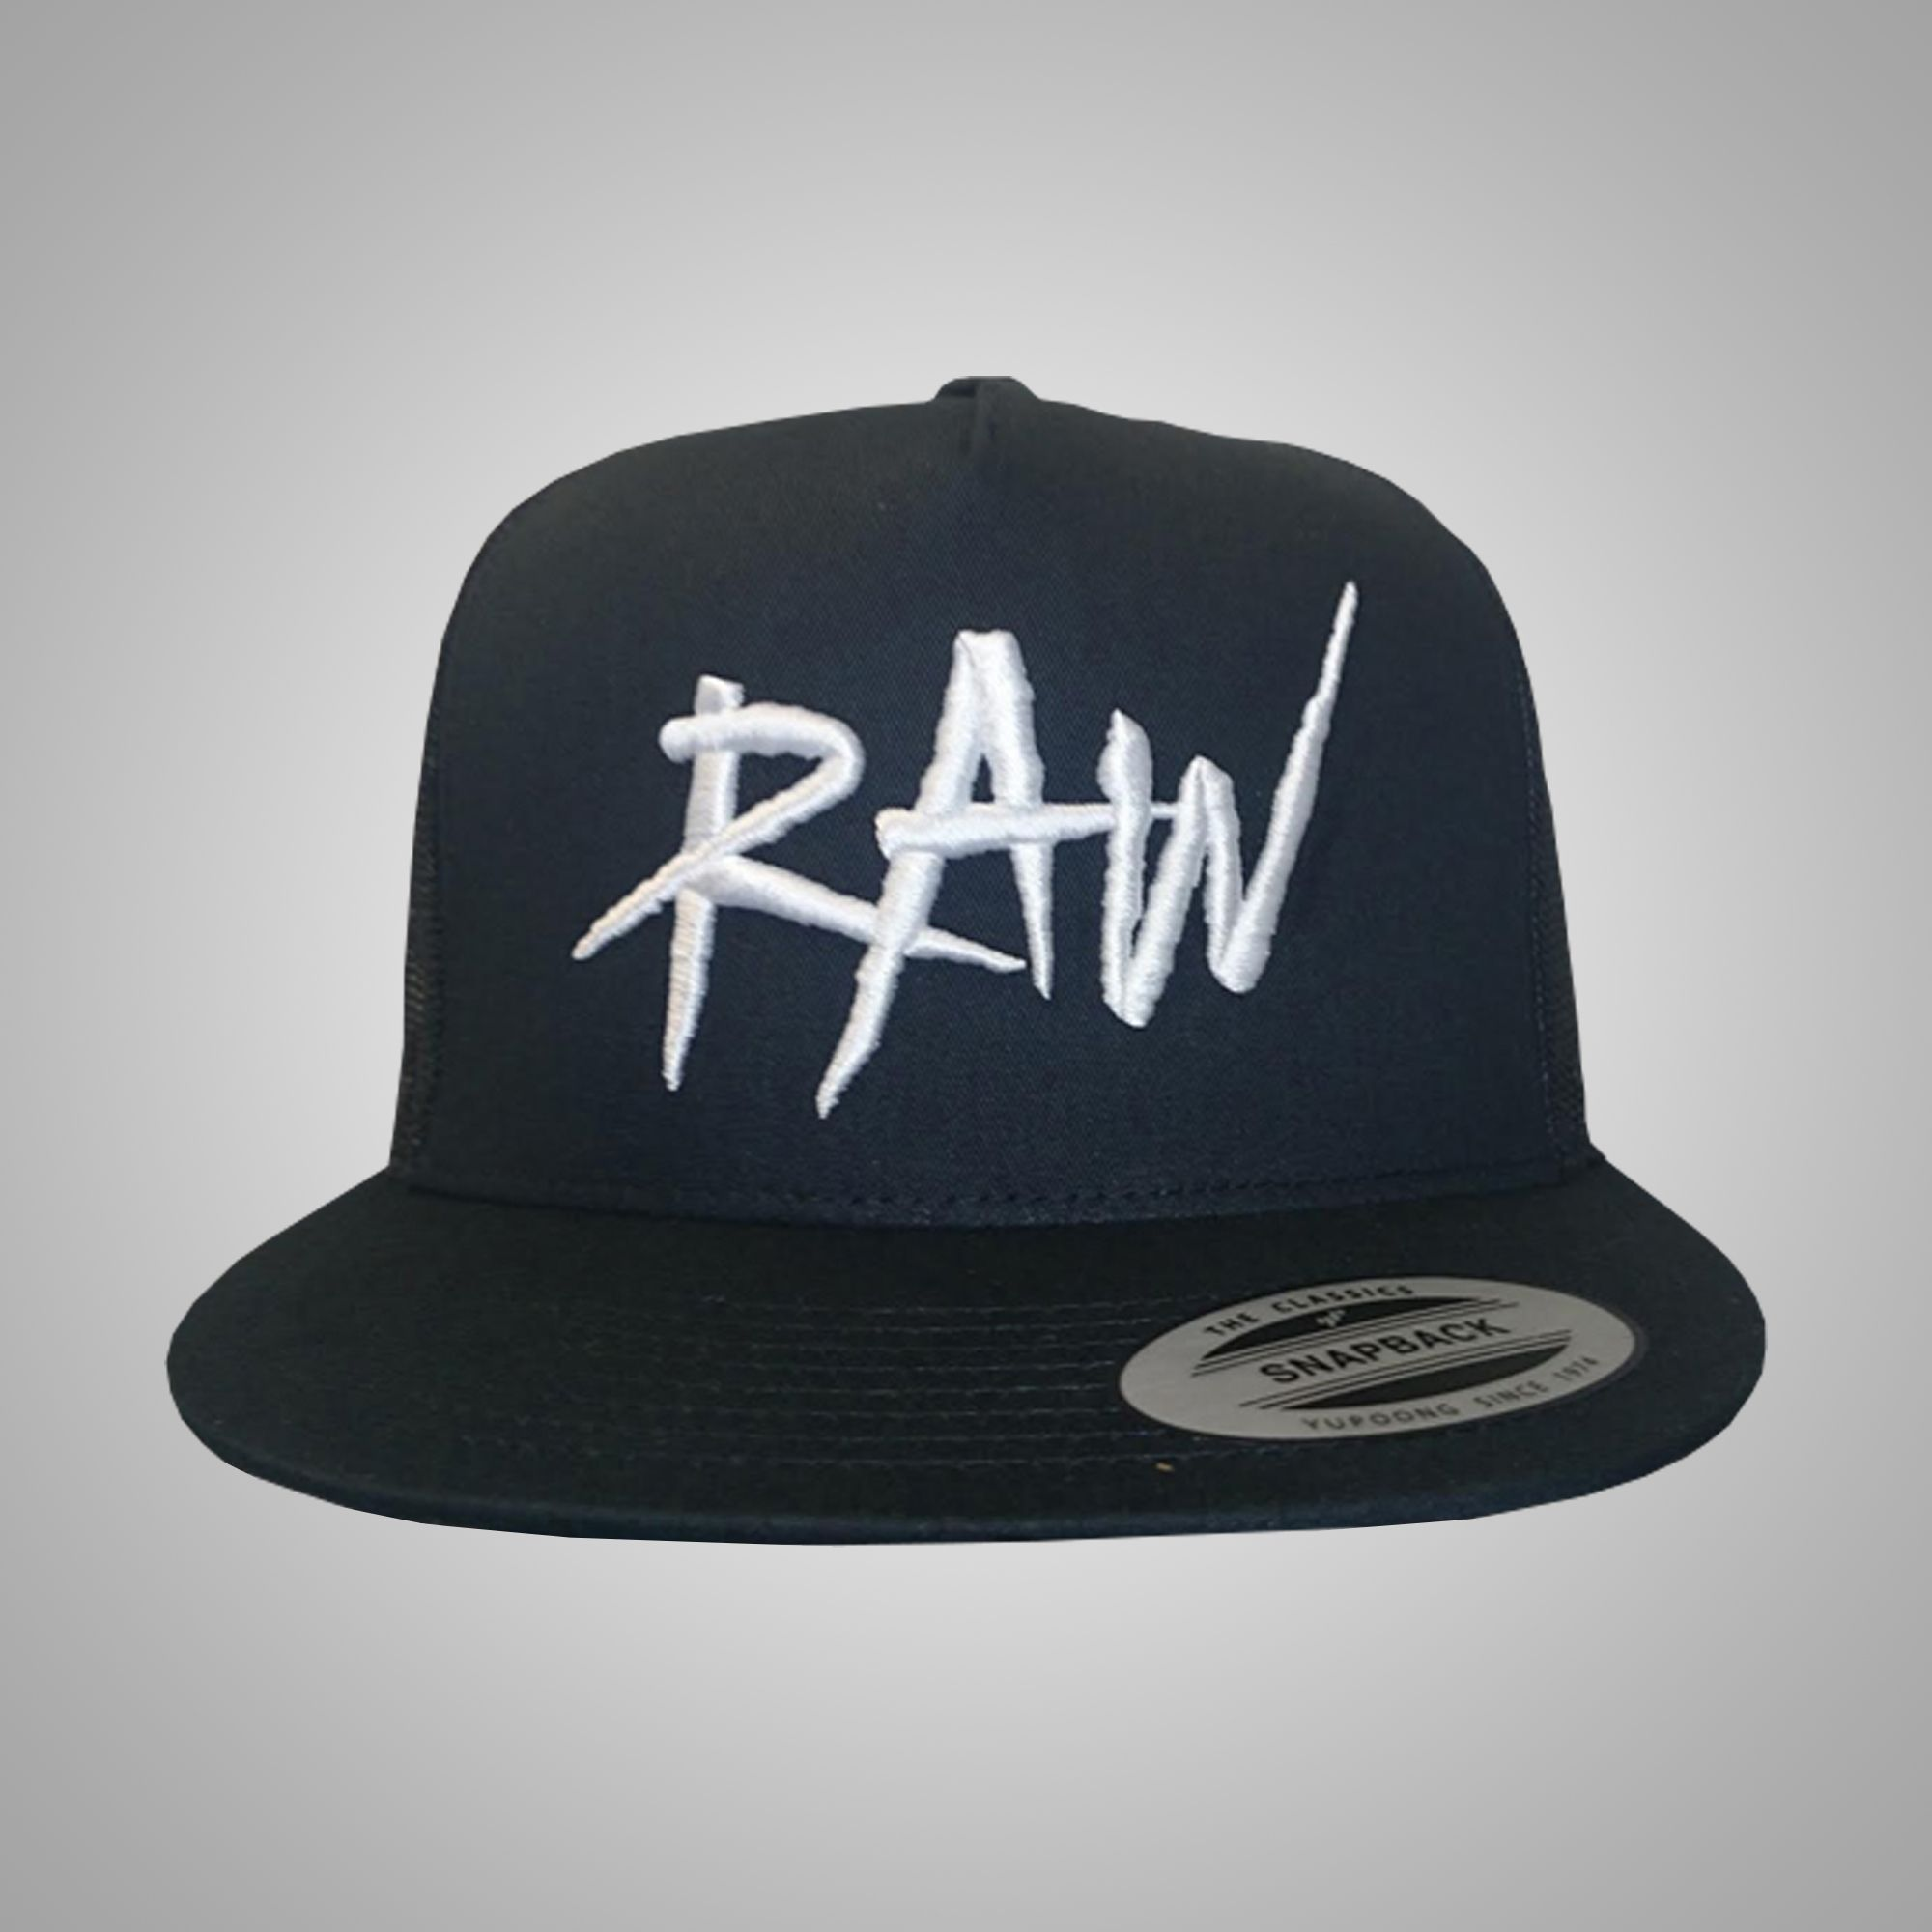 RAW Snapback - Caps/beanies - Hardstyle.com: Home of Hardstyle ...